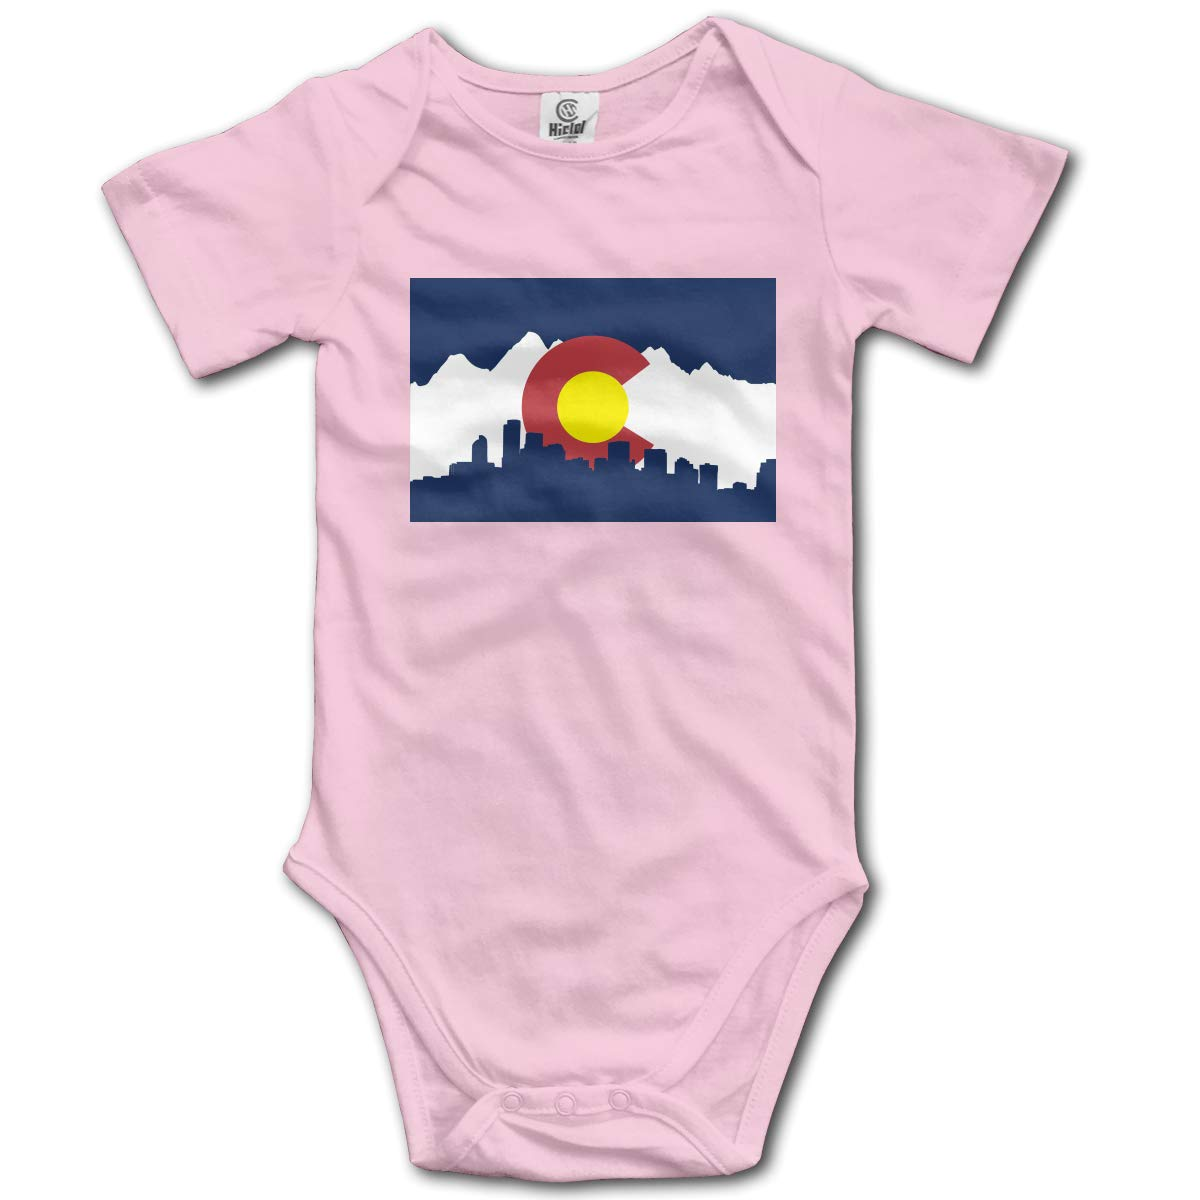 CUTEDWARF Baby Short-Sleeve Onesies Colorado Flag Bodysuit Baby Outfits